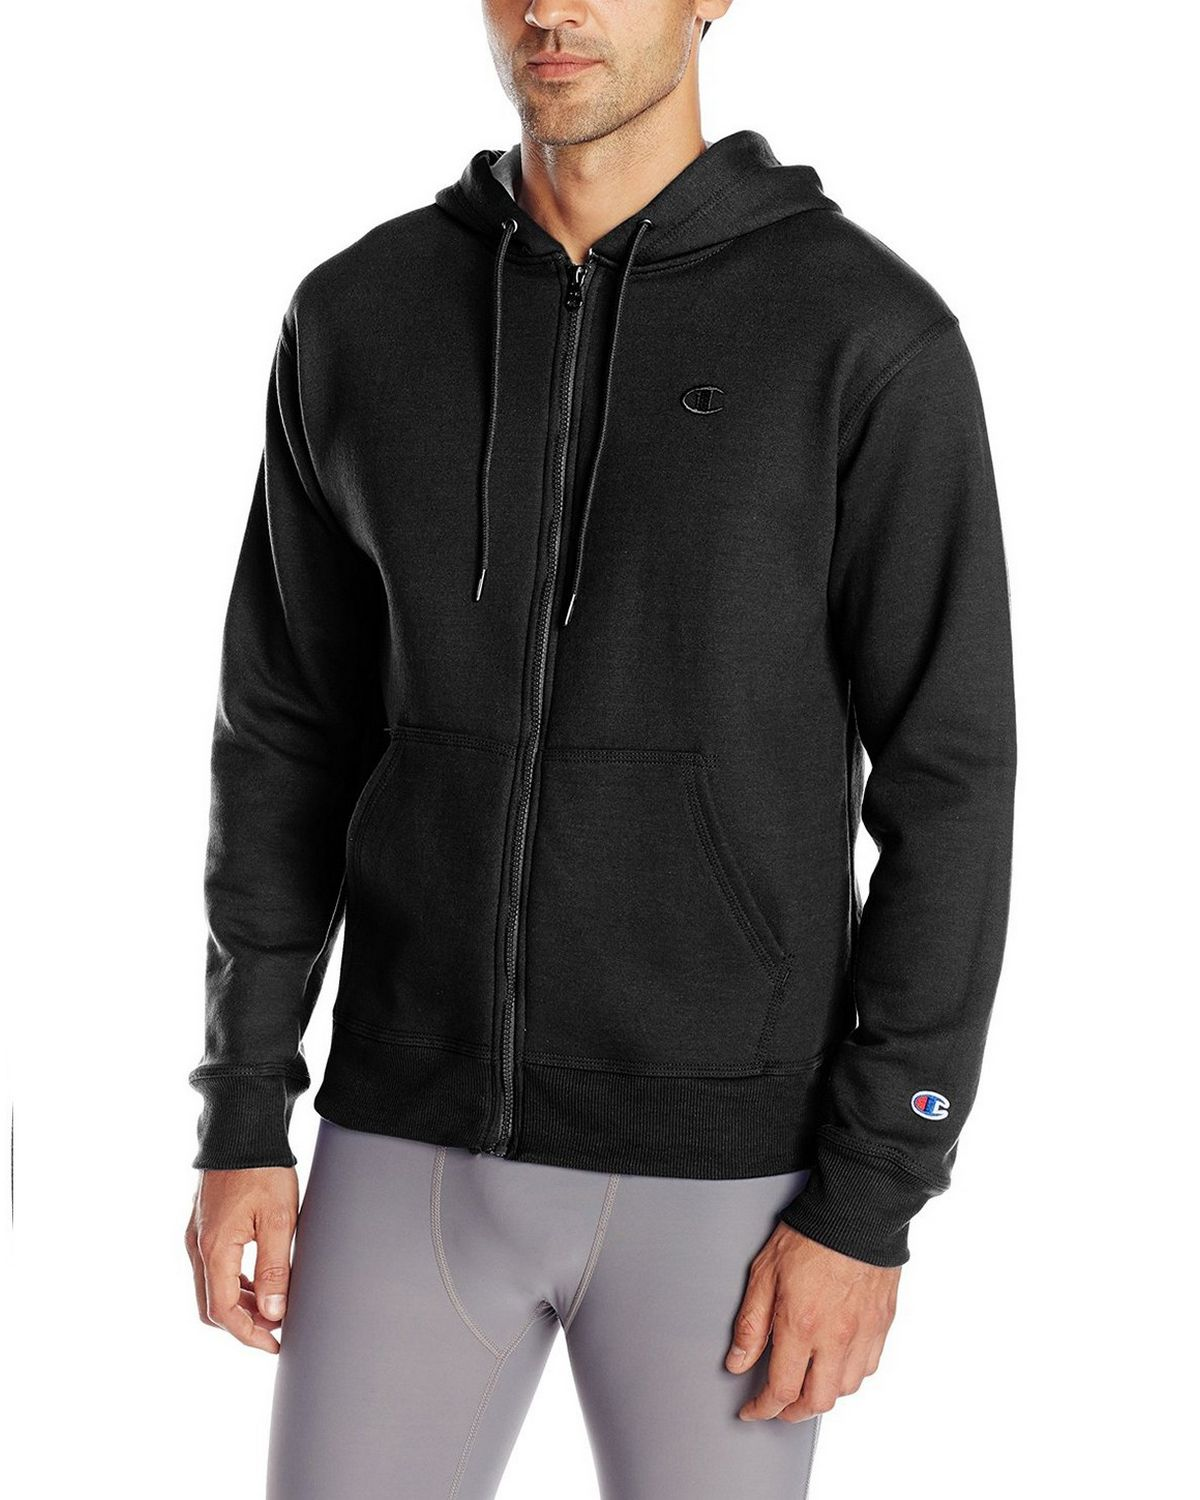 Champion S0891 Mens Fleece Full Zip Jacket - Black - M S0891